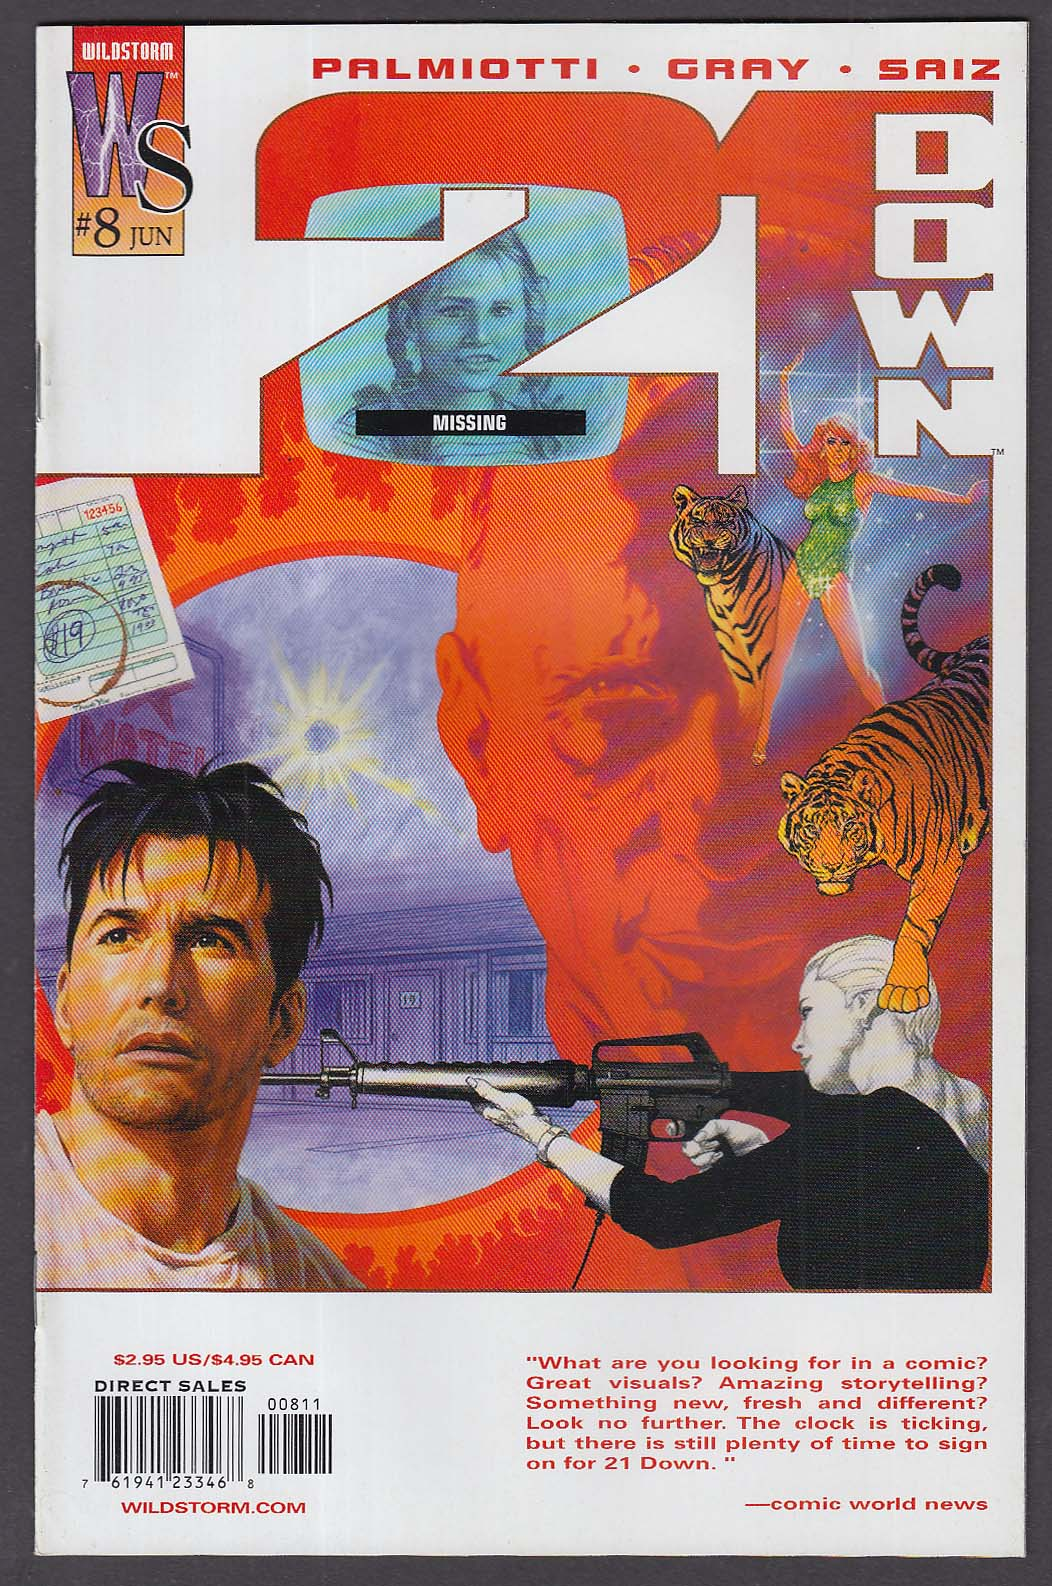 21 DOWN #8 WildStorm comic book 6 2003